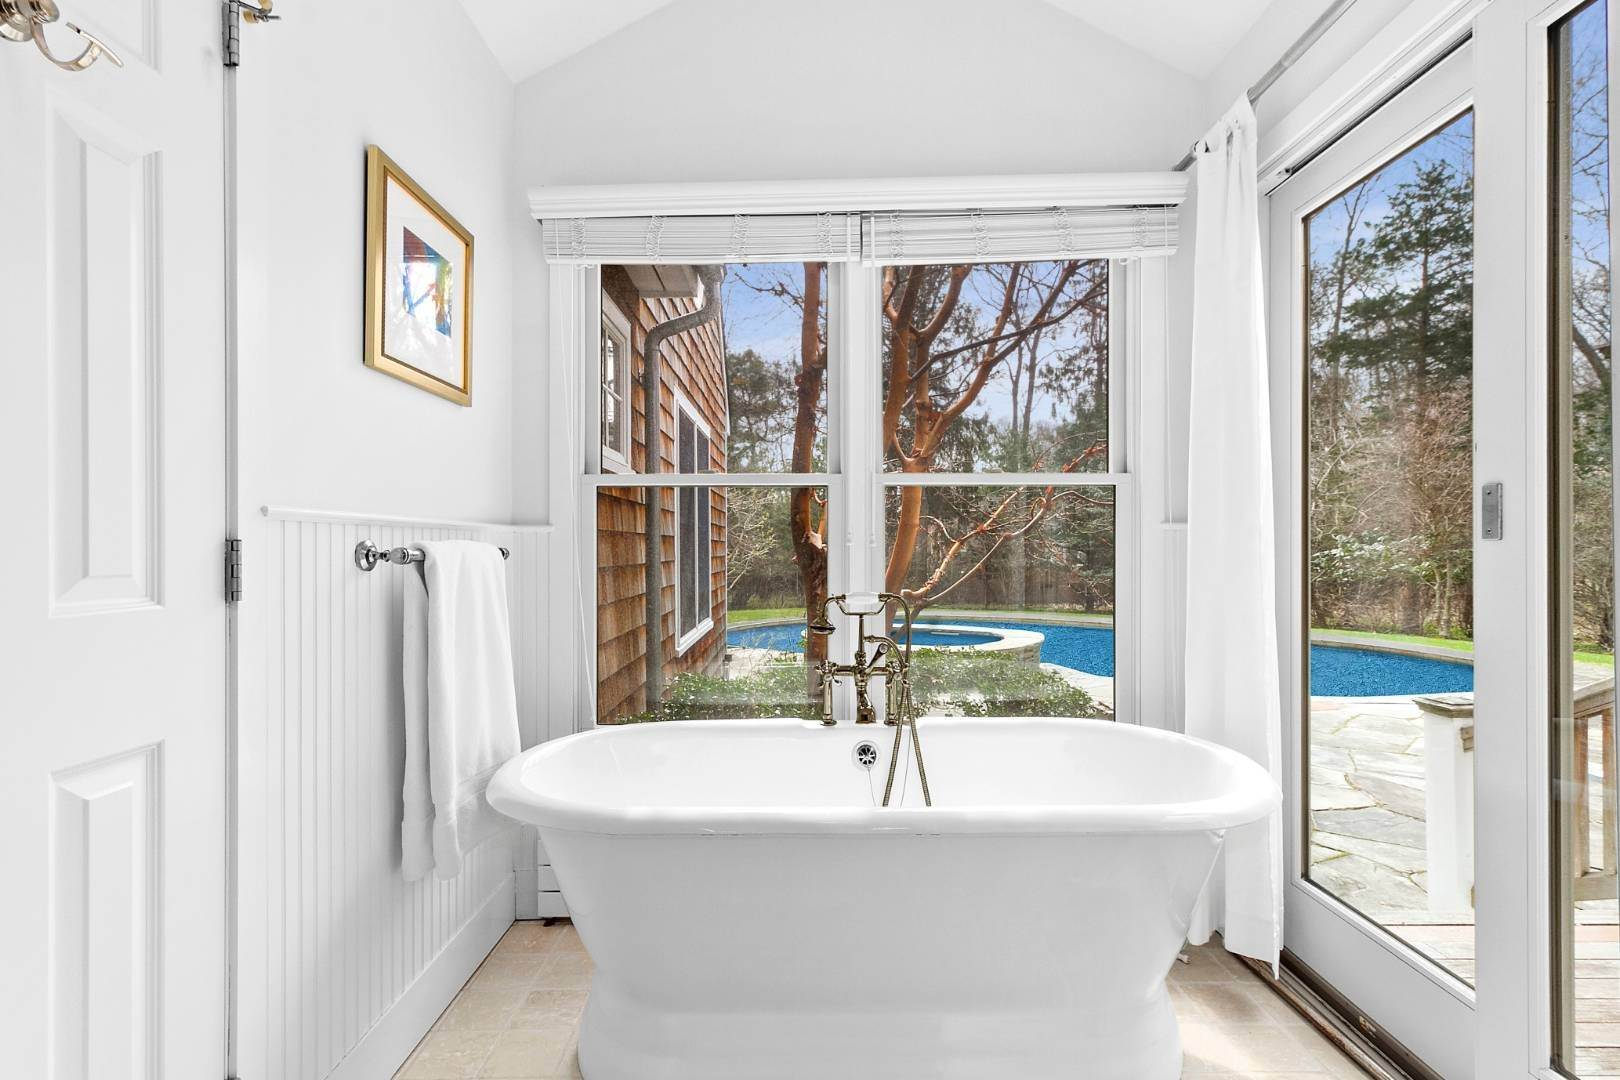 7. Single Family Home for Sale at Historic Springs Two-House Compound 104 Old Stone Hwy, East Hampton, NY 11937